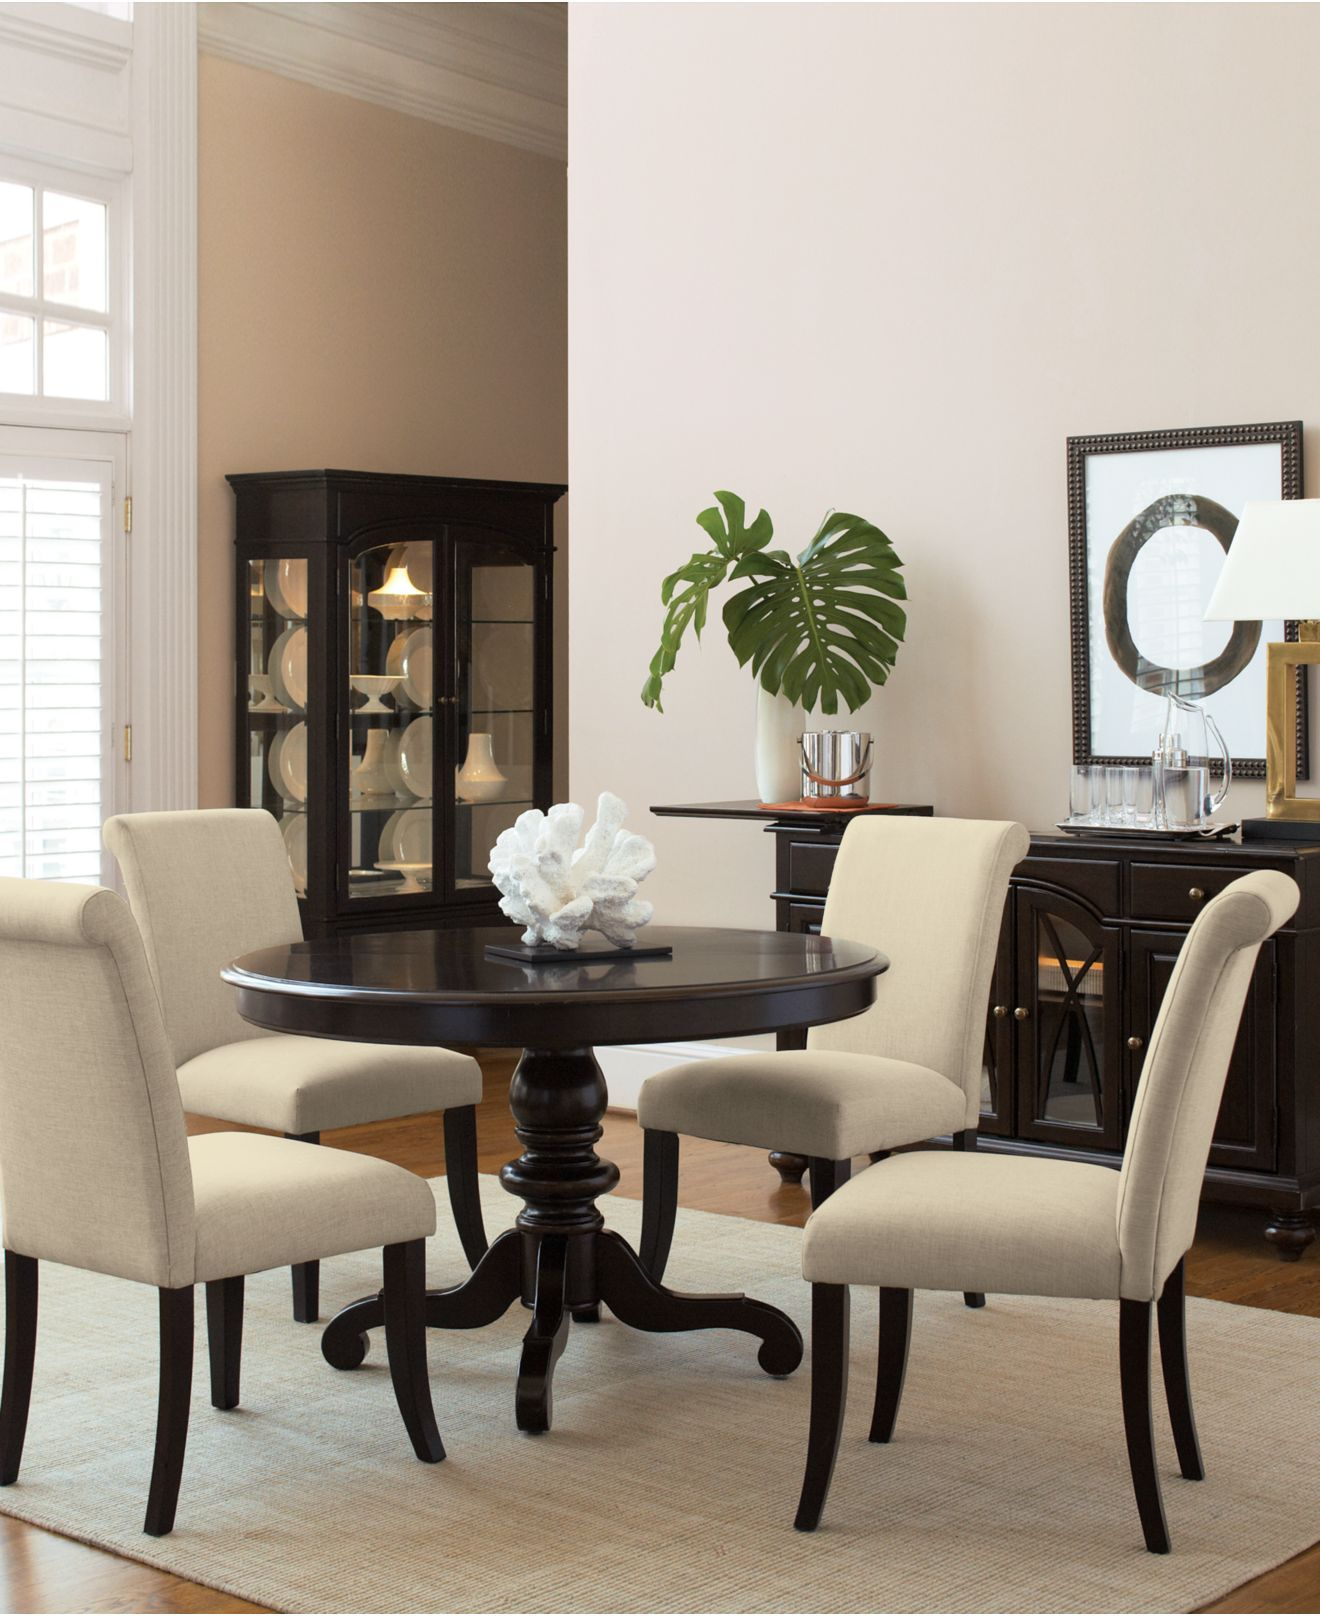 Bradford Dining Room Furniture, 7 Piece Dining Set (Round Table and ...